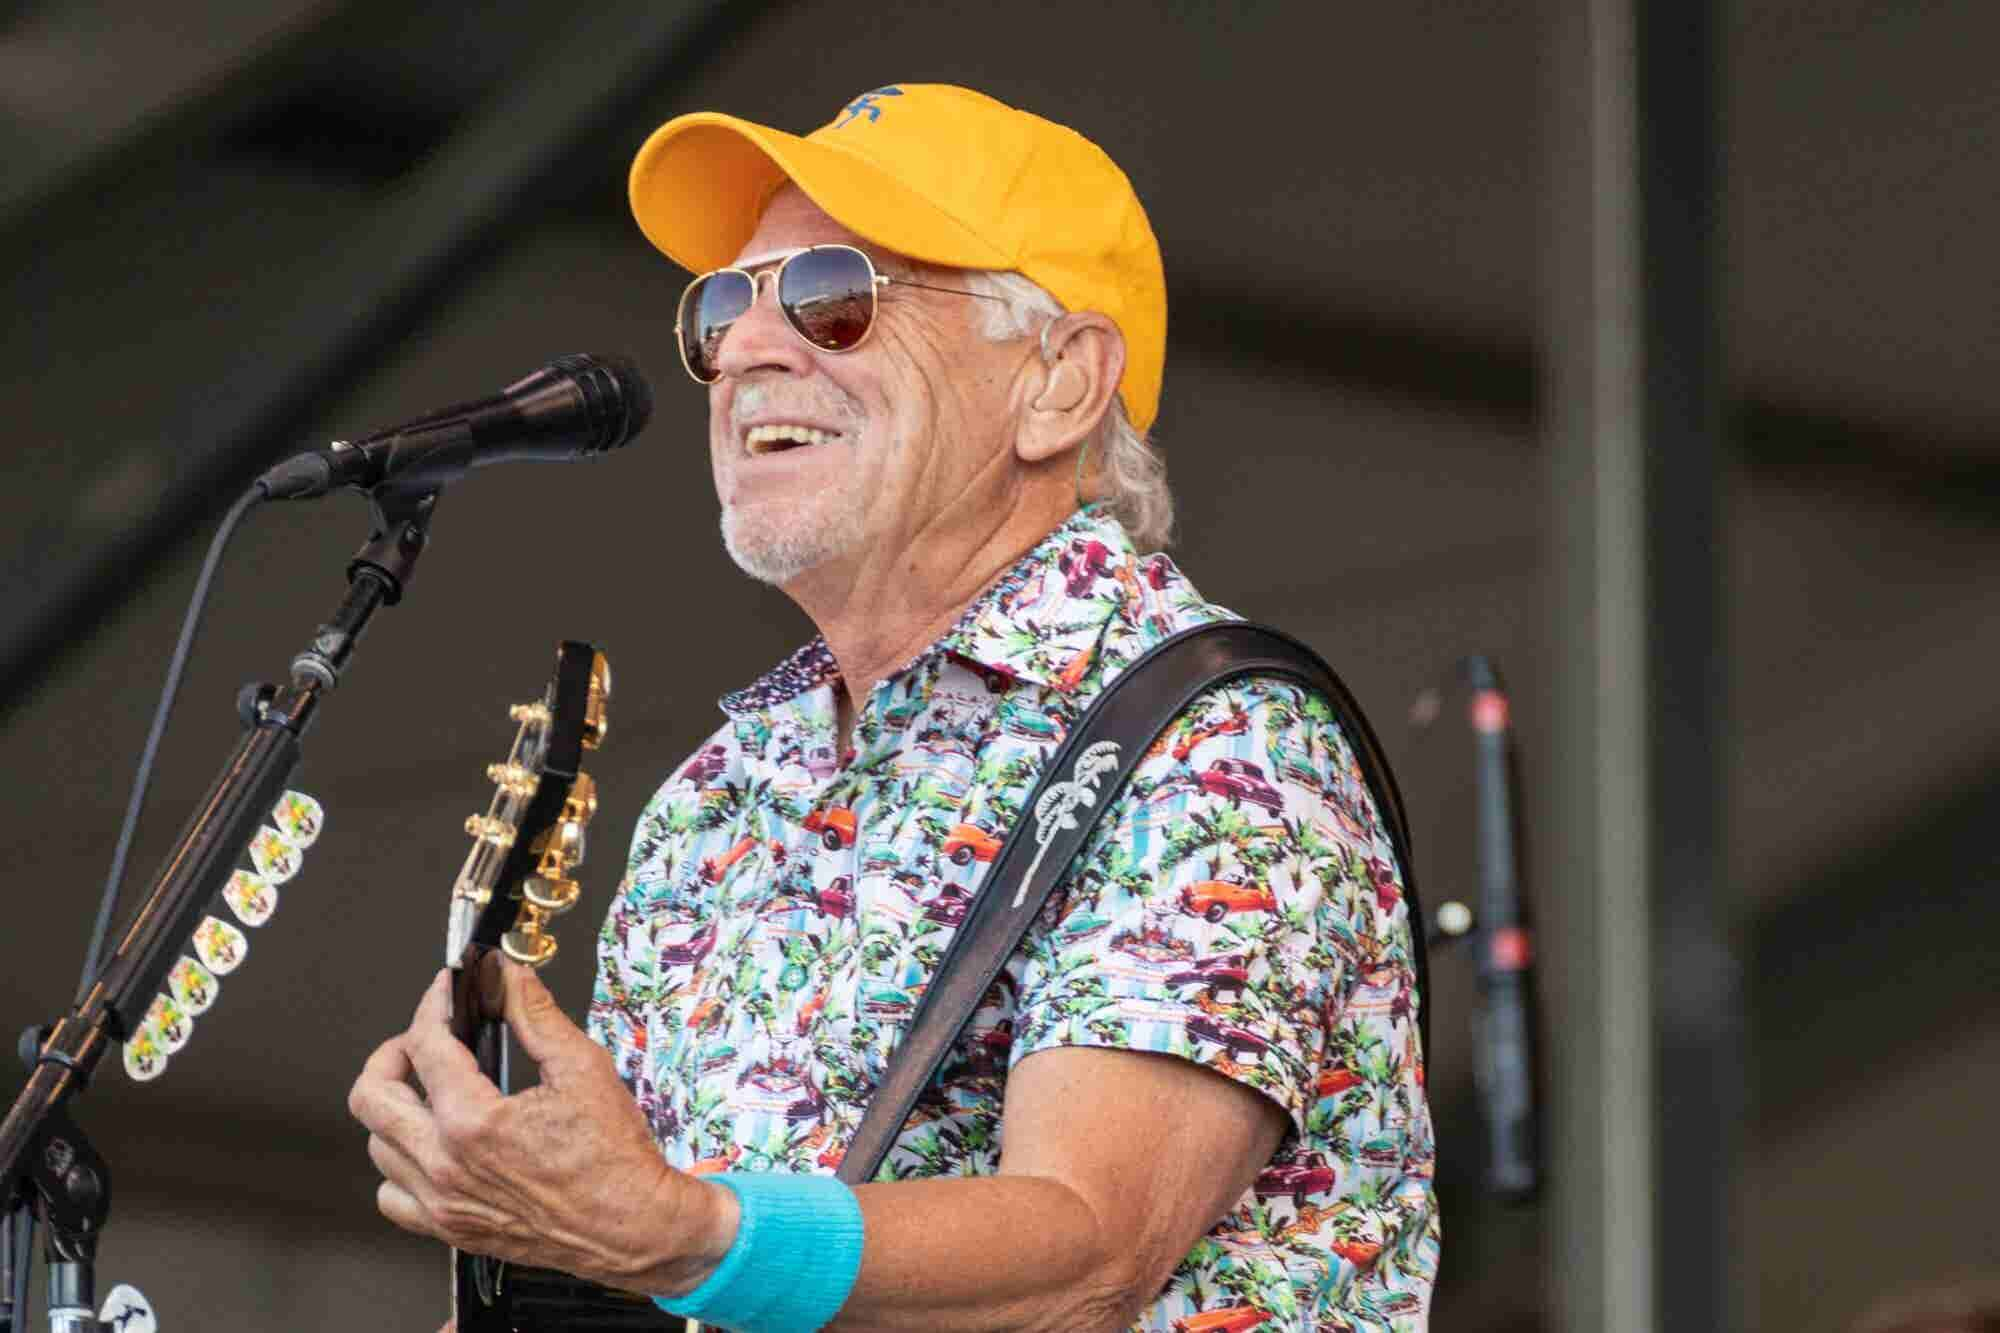 Coming Soon to a Dispensary Near You: Jimmy Buffett's Coral Reefer